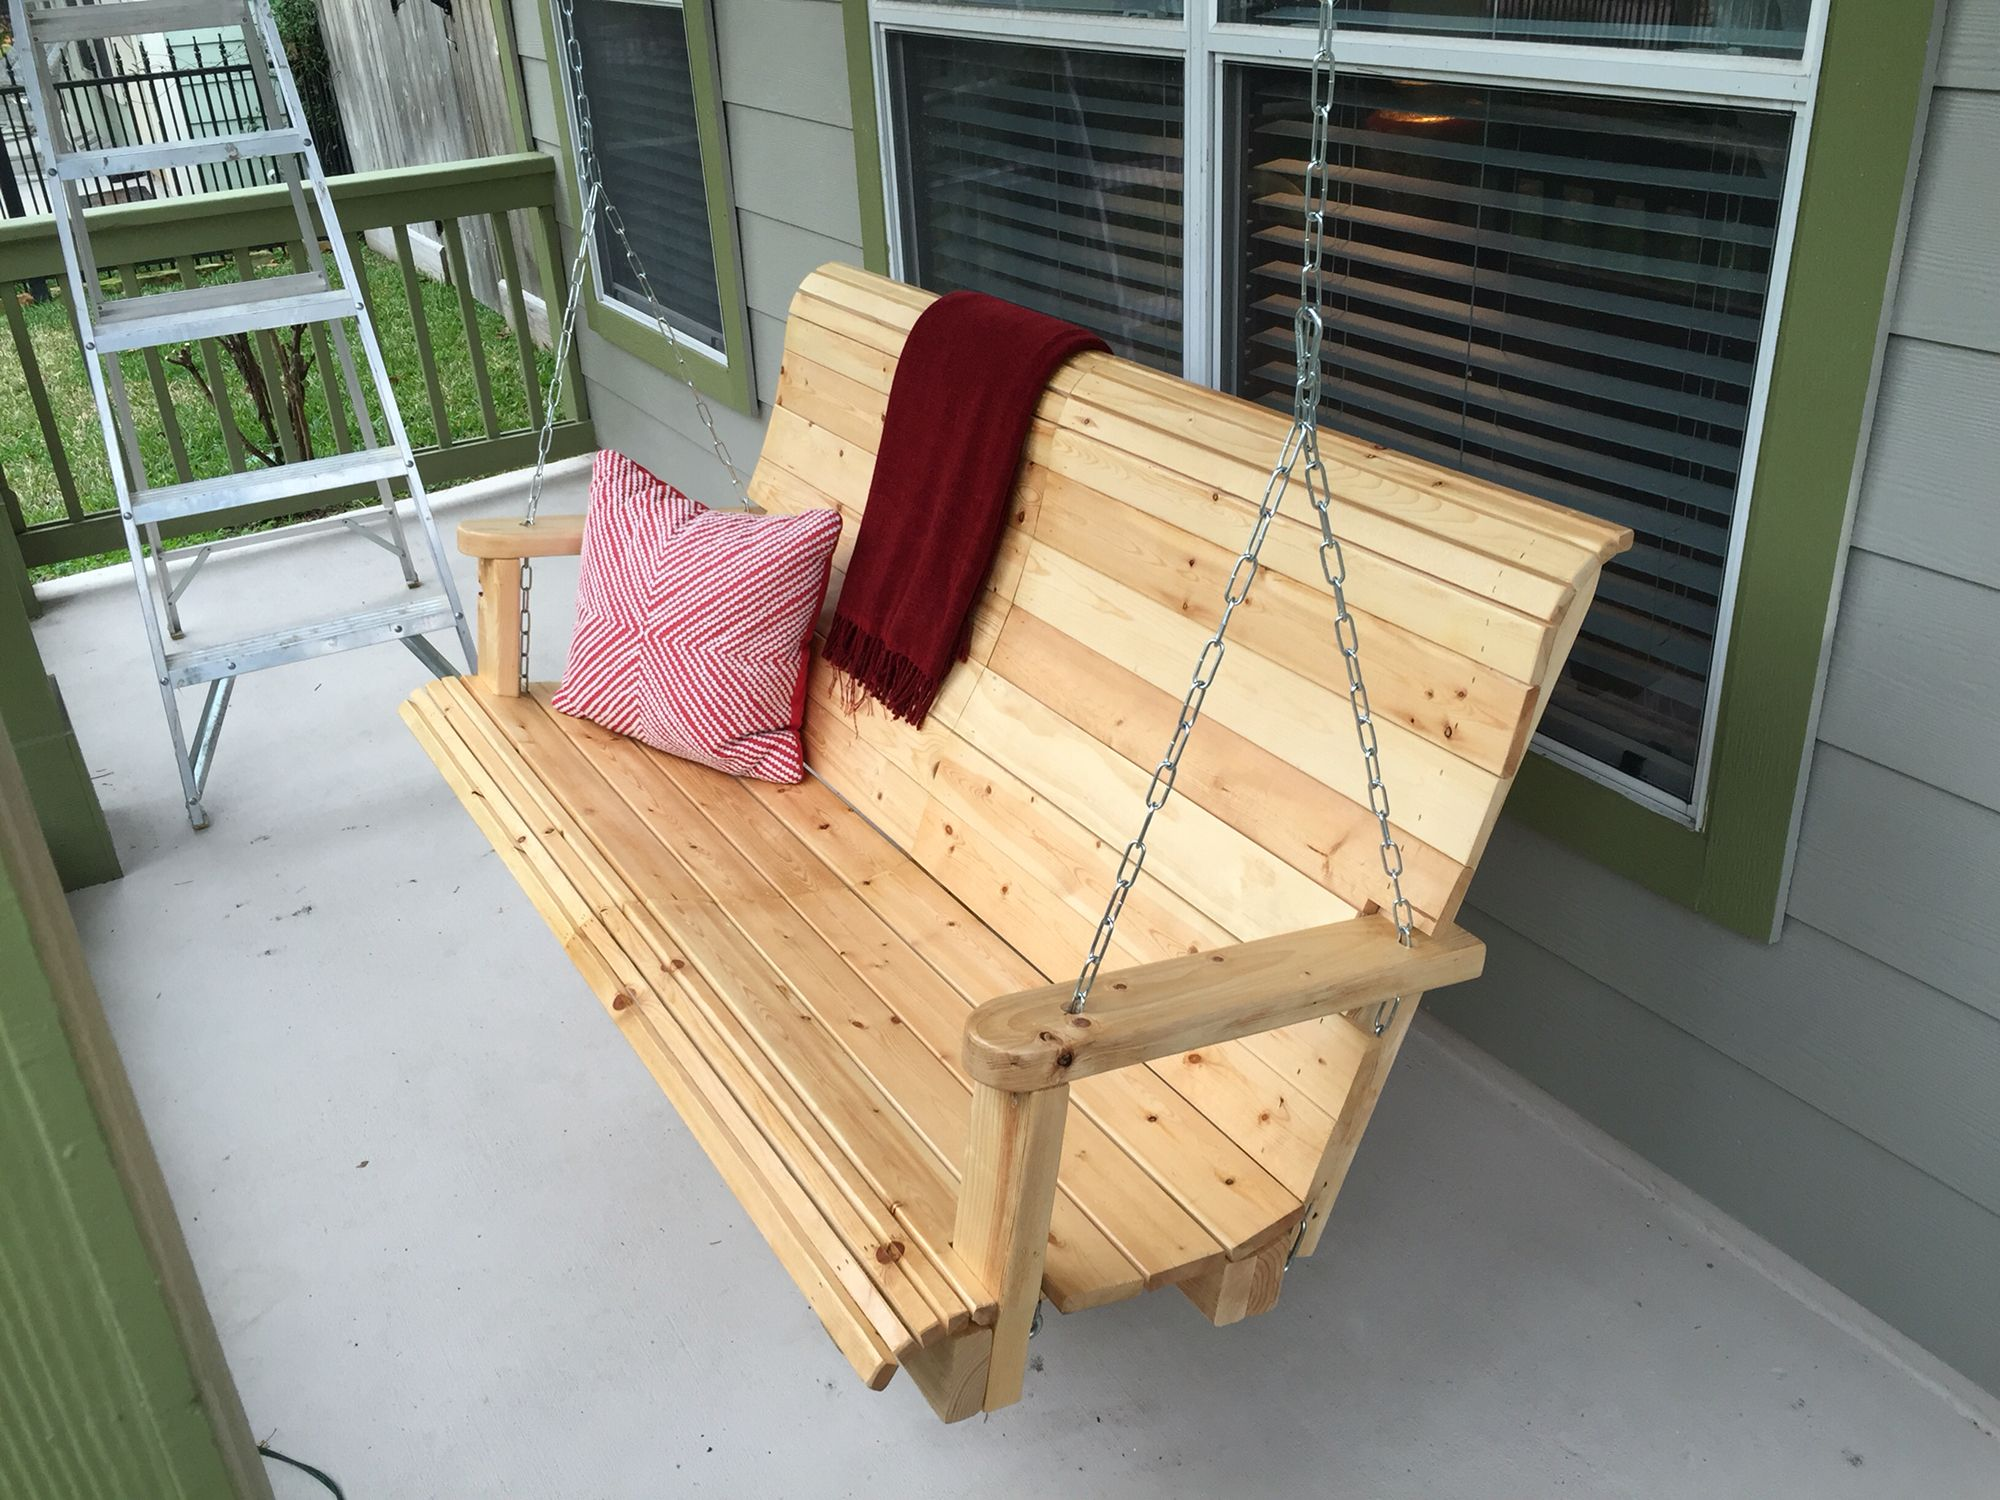 Custom Porch Swing Made With Reclaimed IKEA Bed Slats.